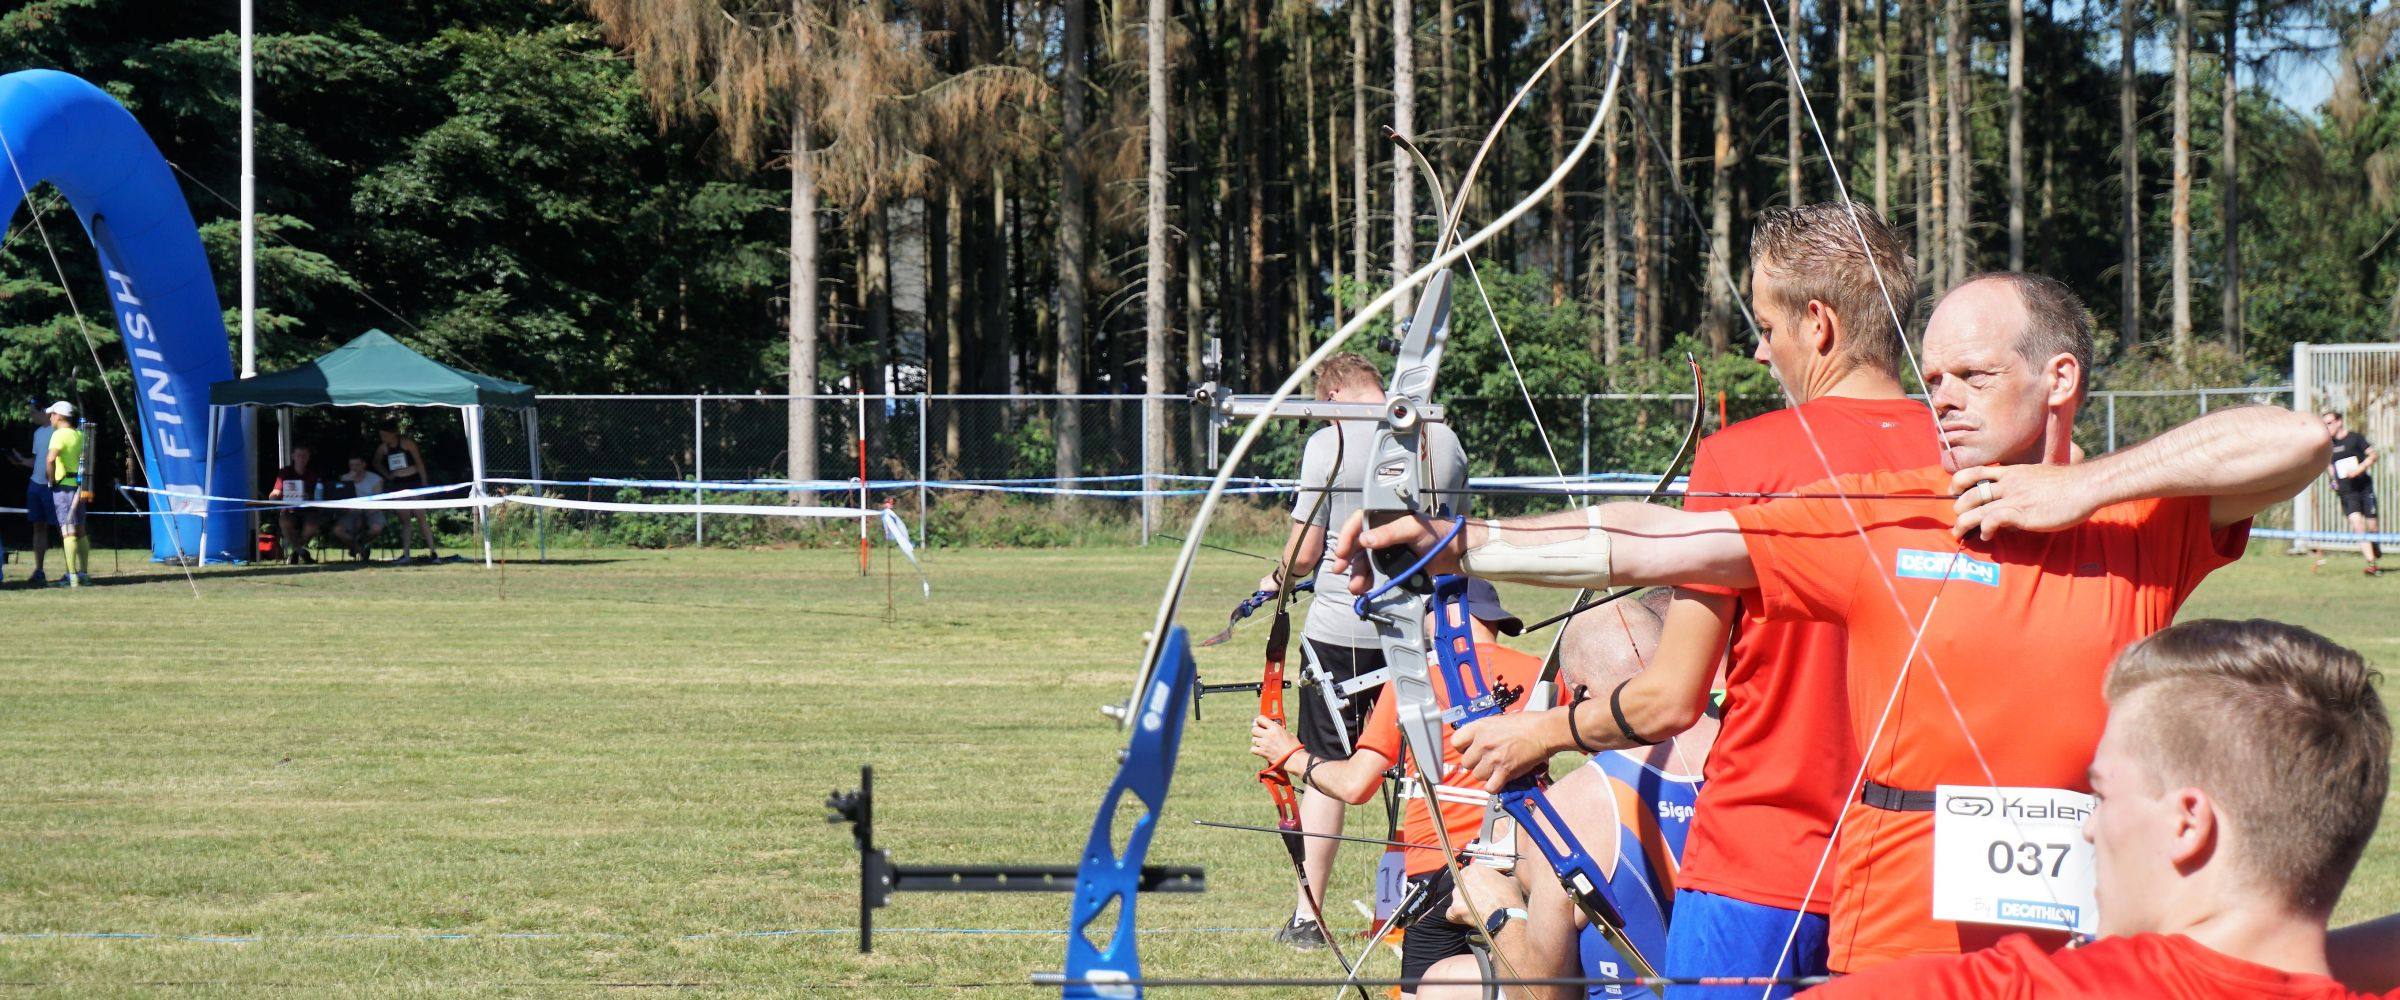 2019-07/2019-06-29-run-archery-ad-van-zelst-8-